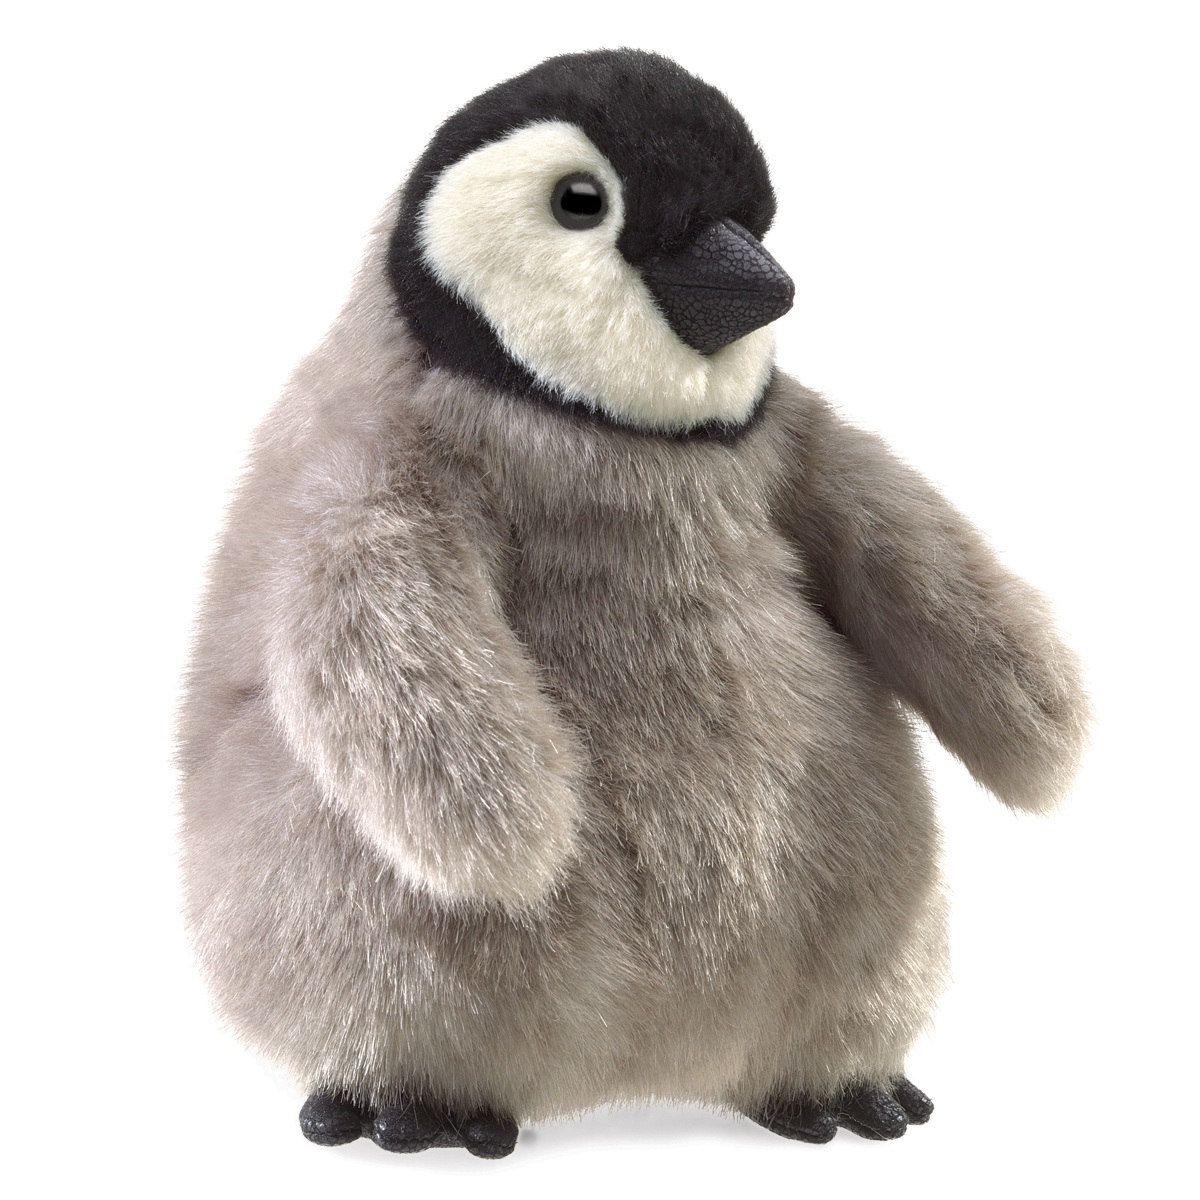 Baby Emperor Penguin Hand Puppets 3126 By Folkmanis Puppets